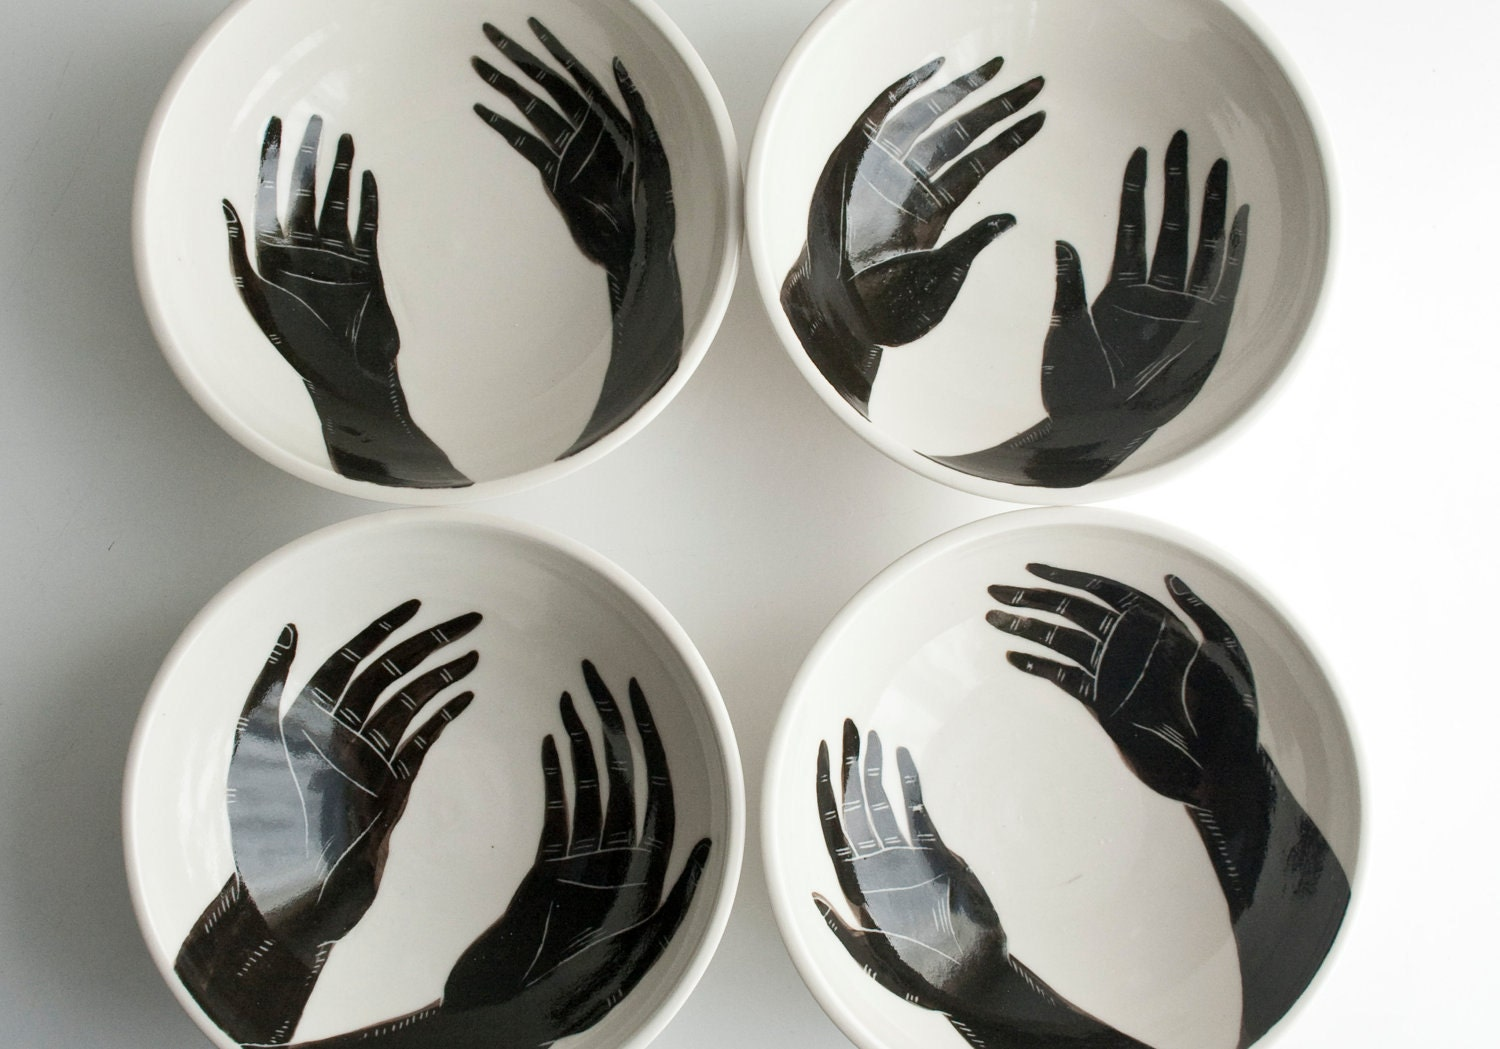 Grasp (Porcelain Bowls) set of 4